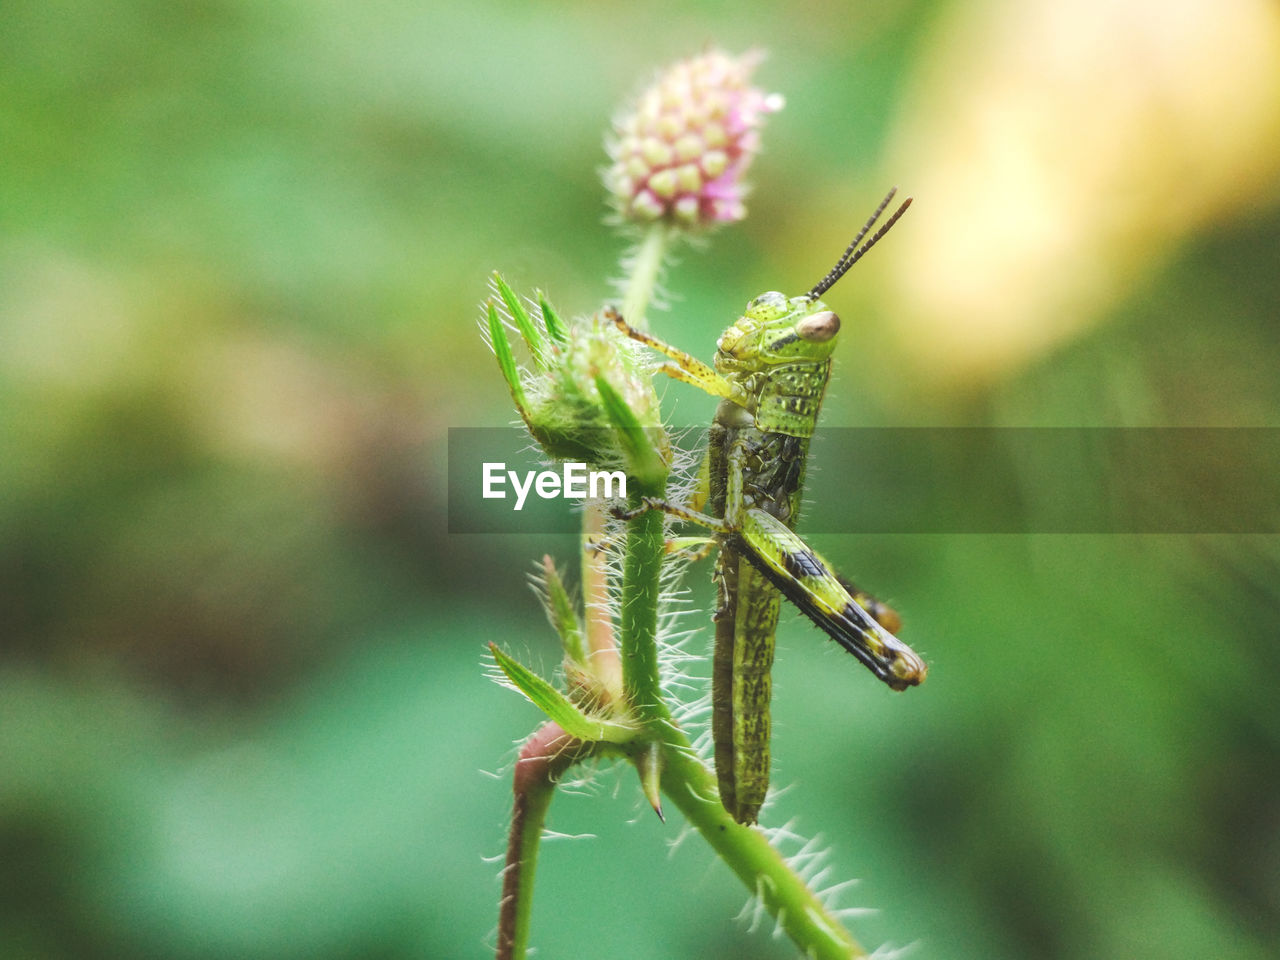 close-up, one animal, invertebrate, insect, animal wildlife, animals in the wild, plant, animal themes, animal, nature, green color, day, focus on foreground, beauty in nature, growth, no people, flower, flowering plant, selective focus, grasshopper, outdoors